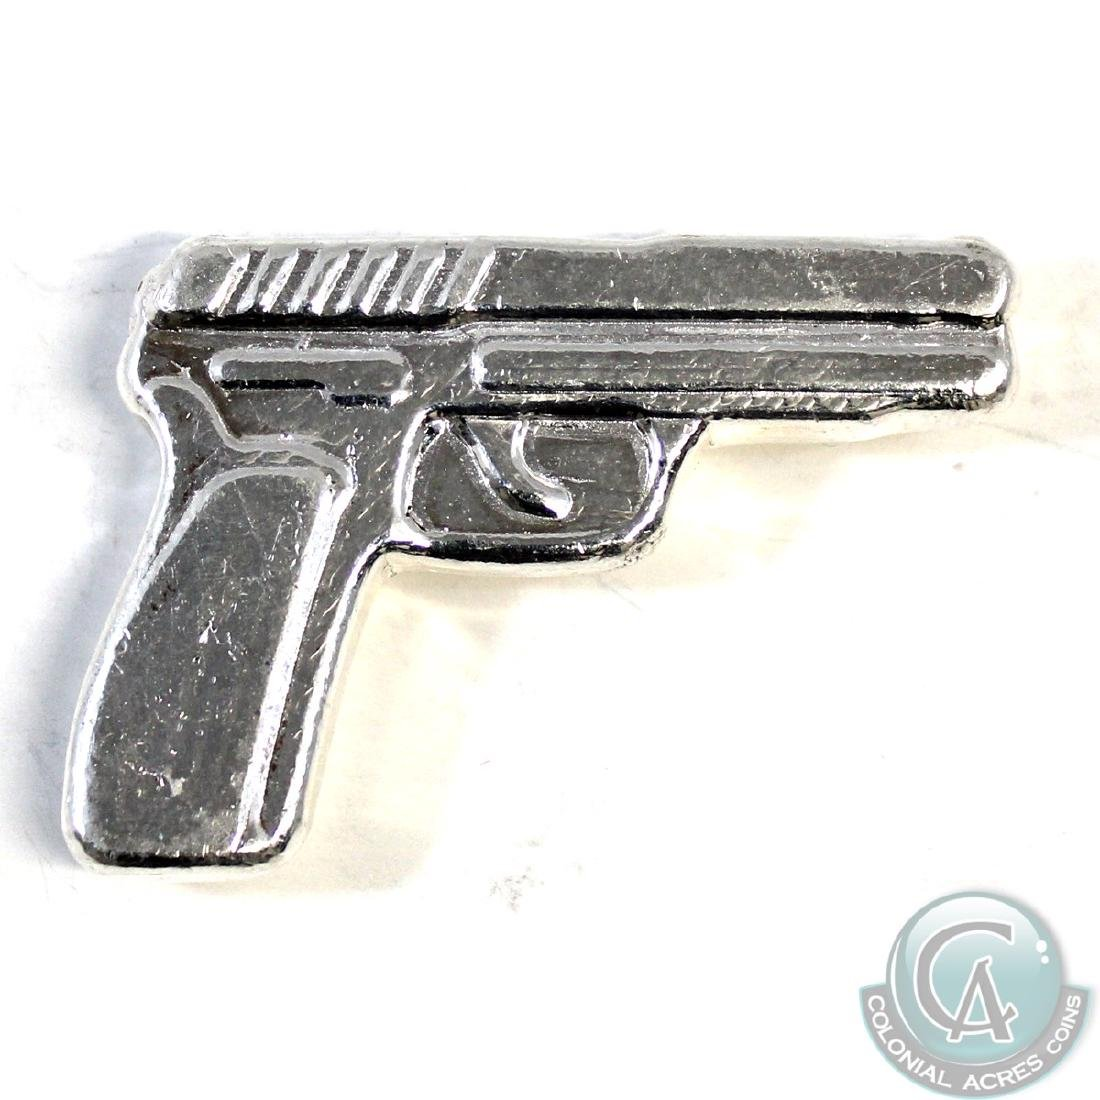 38 Caliber (38 grams) Fine Silver 'Gun' Monarch